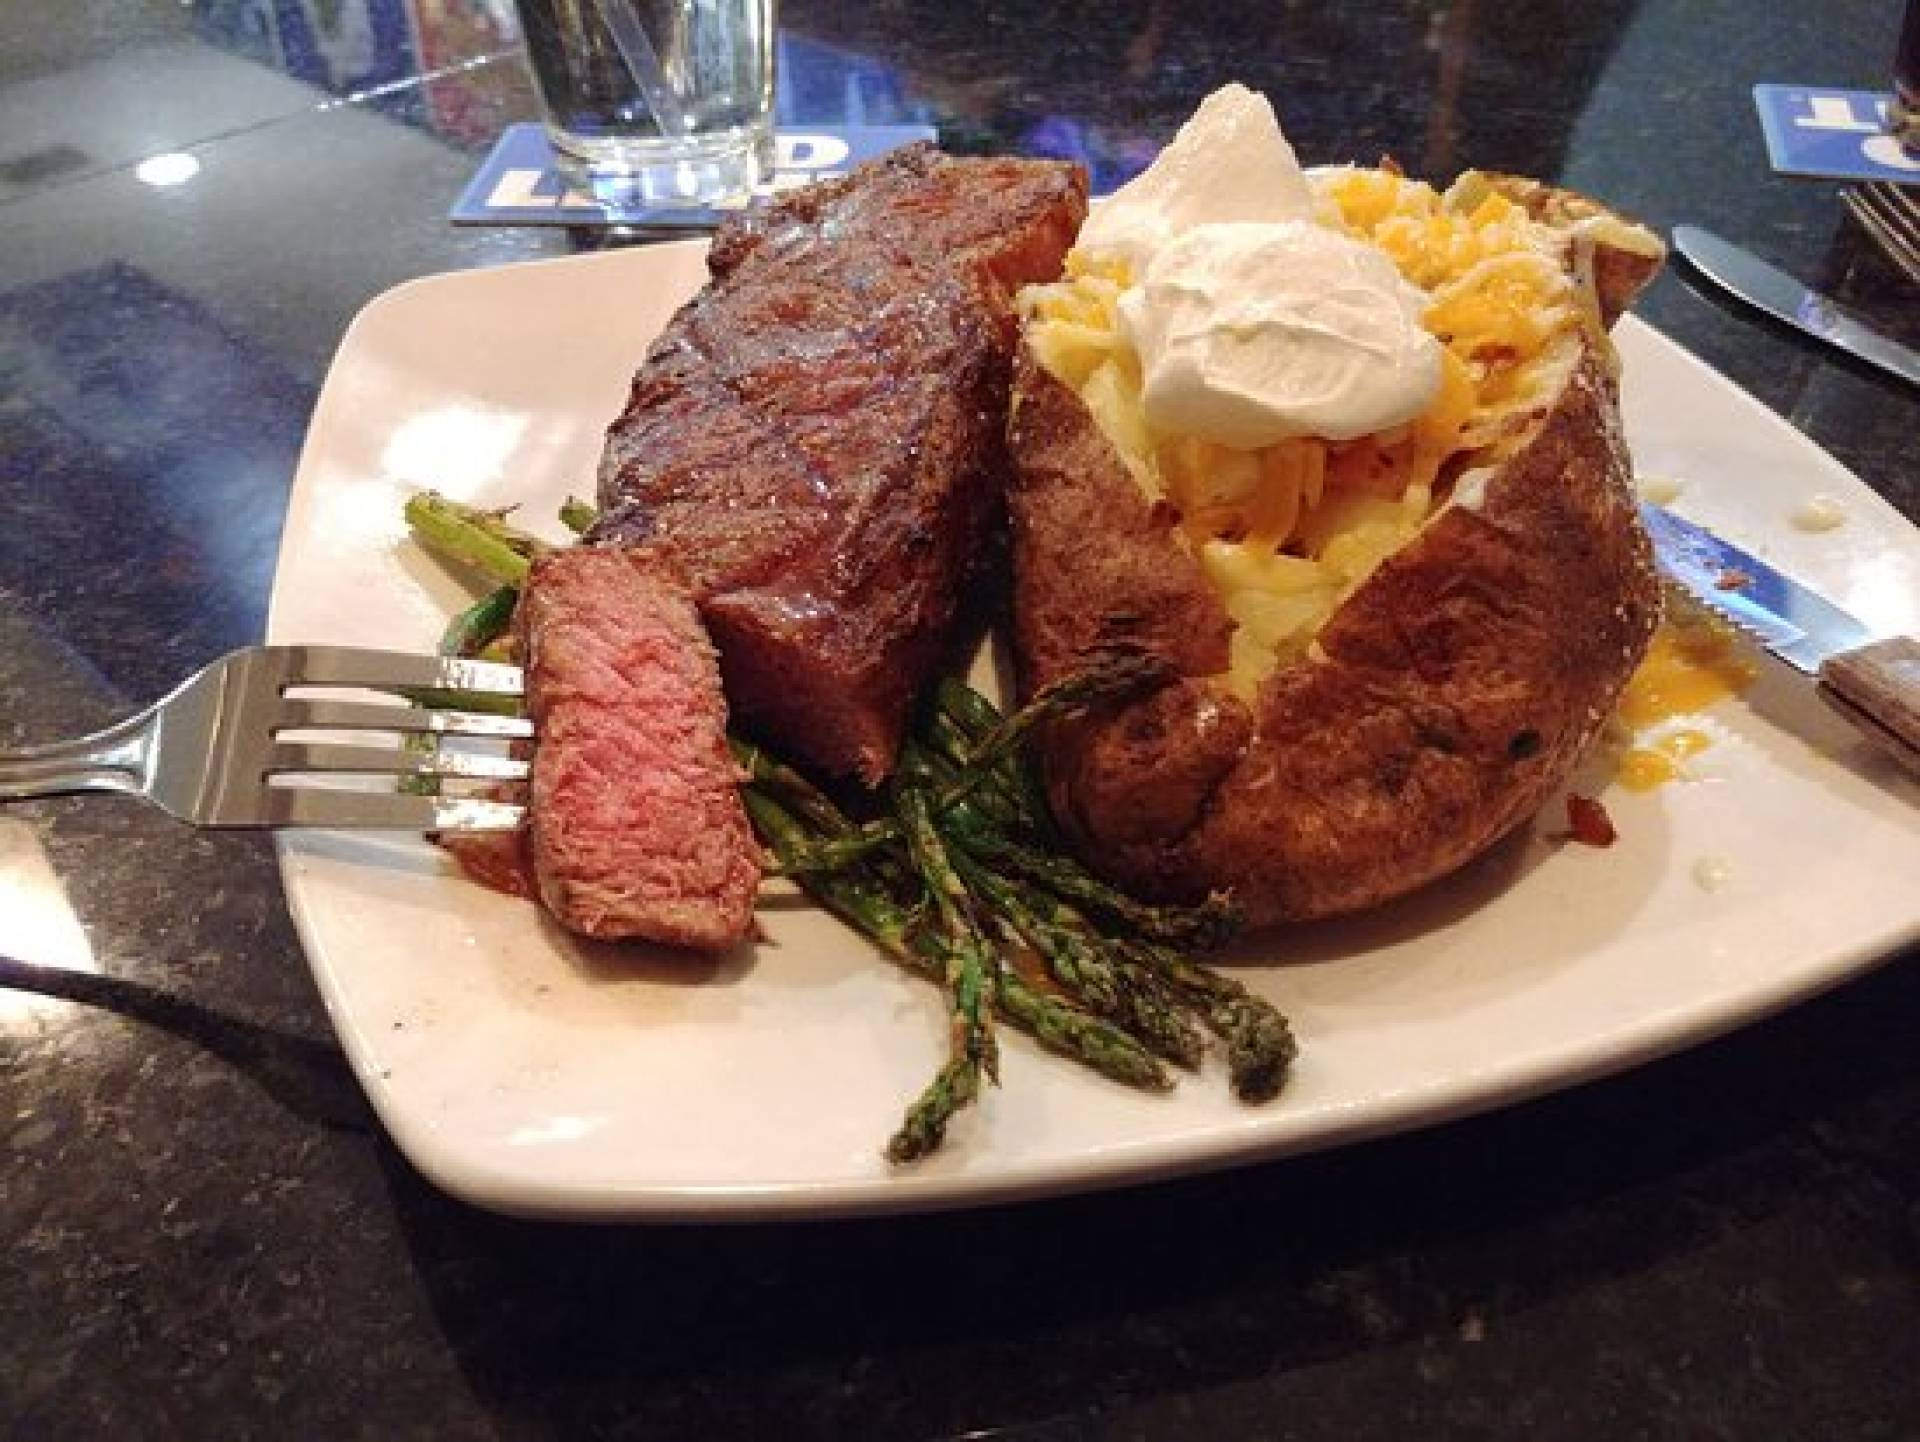 Grilled Steak with Loaded Baked Potato